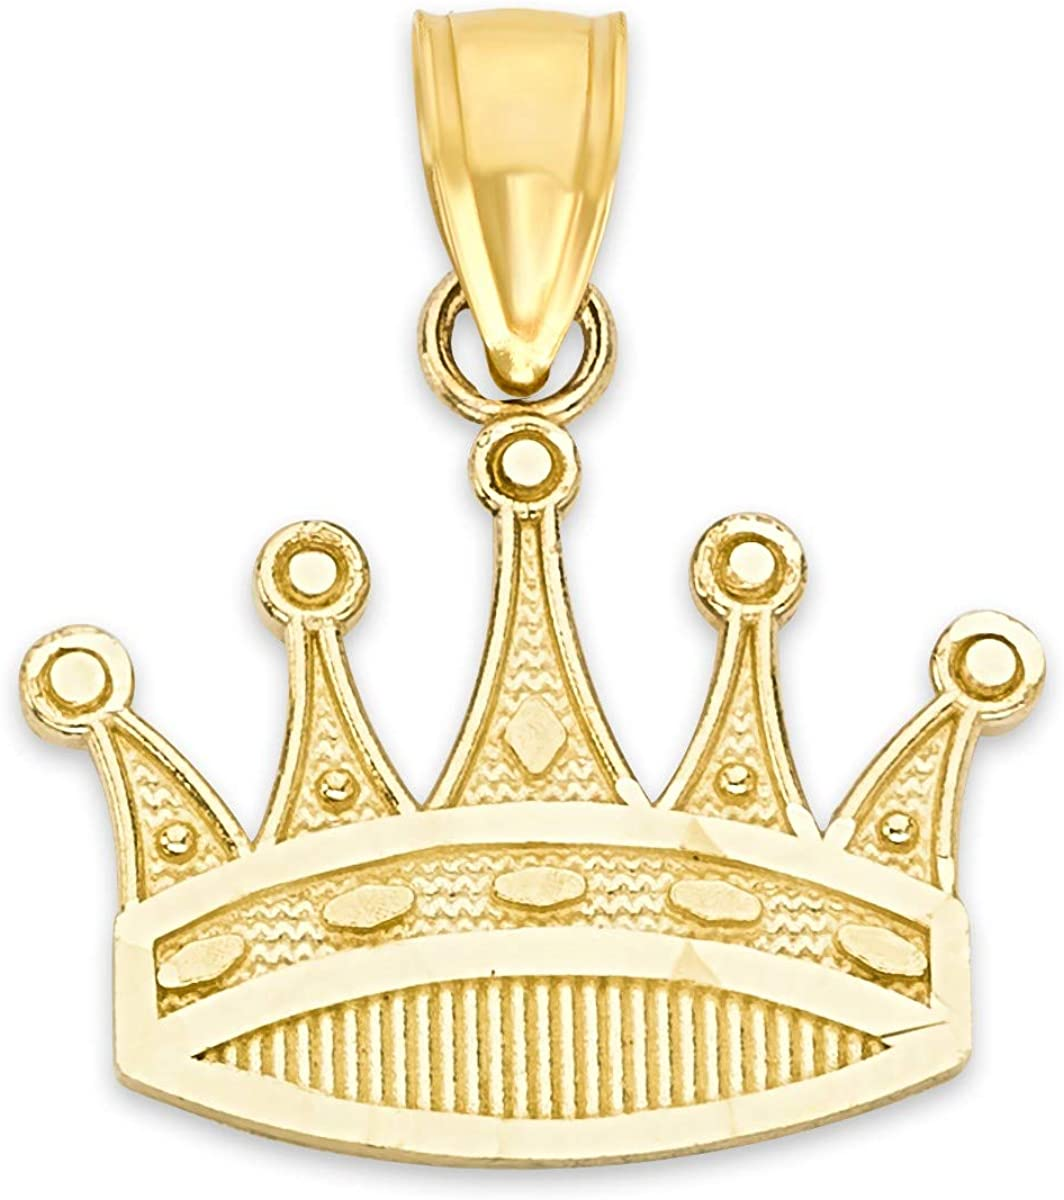 10k Real Solid Gold Tiara Pendant, Crown Princess Jewelry, Royalty Gifts for Her